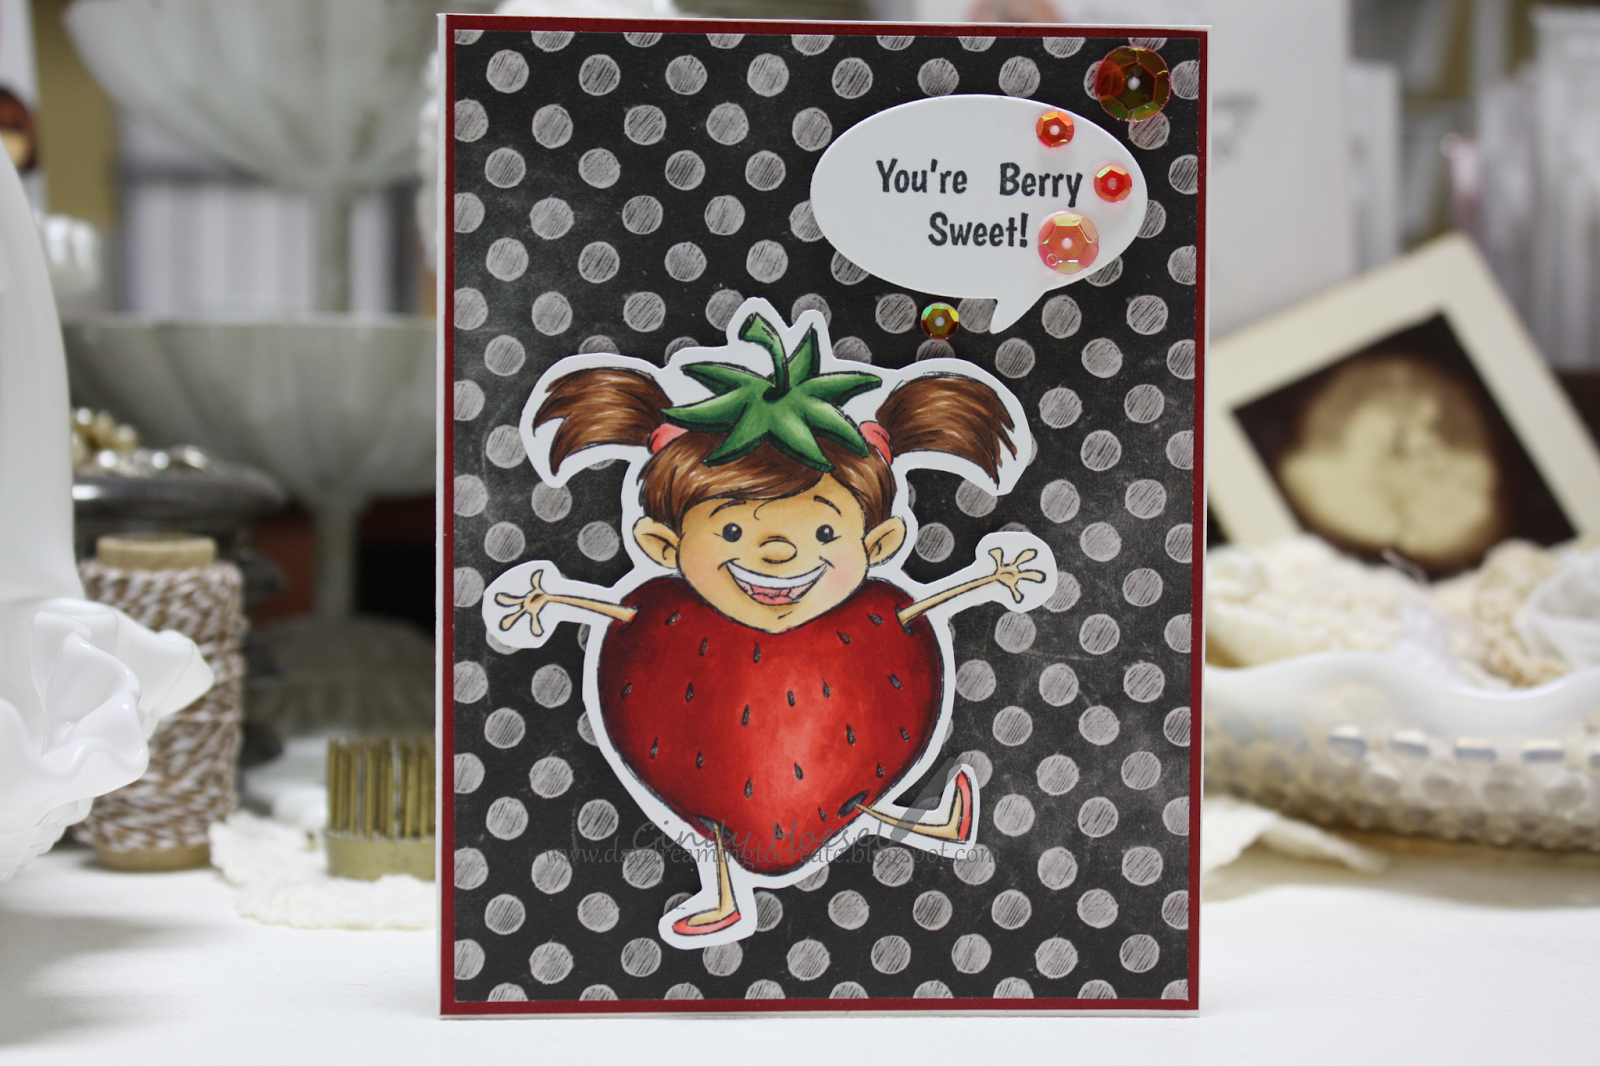 Made by Cindy Hoesel, Whimsy Stamps, Krista Heij-Barber, Sweet Berry